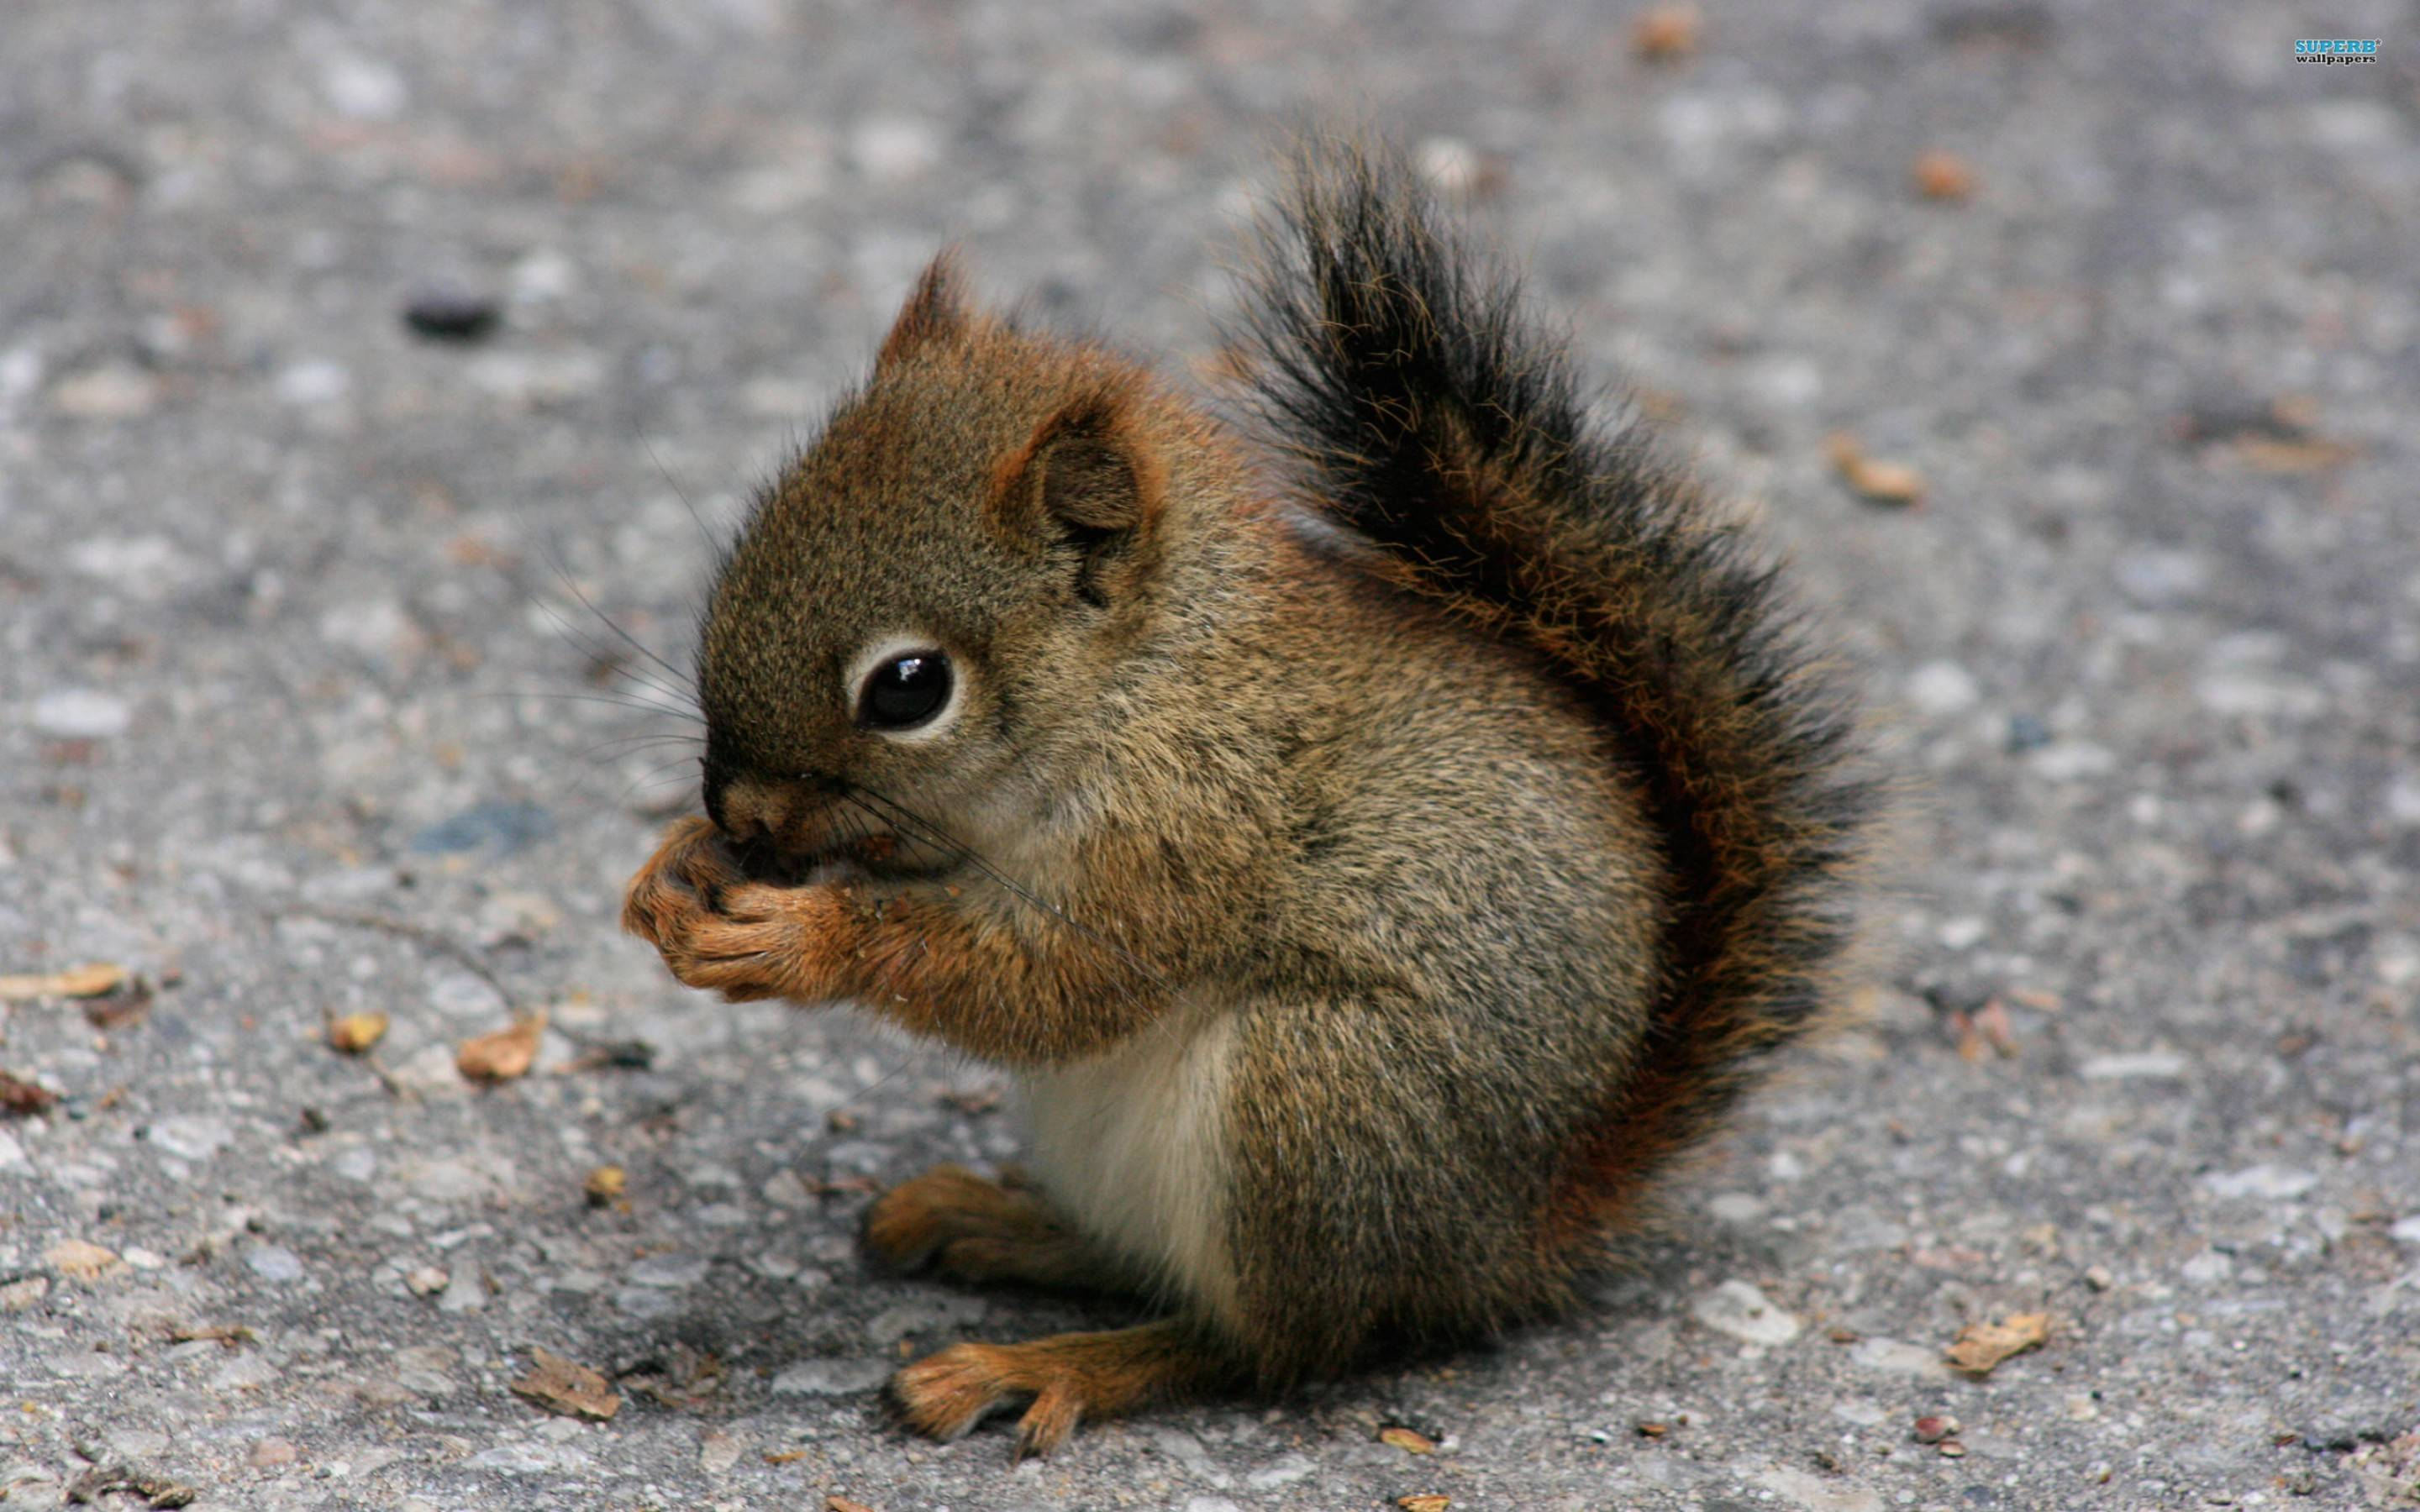 Squirrel Wallpapers 39780 in Animals